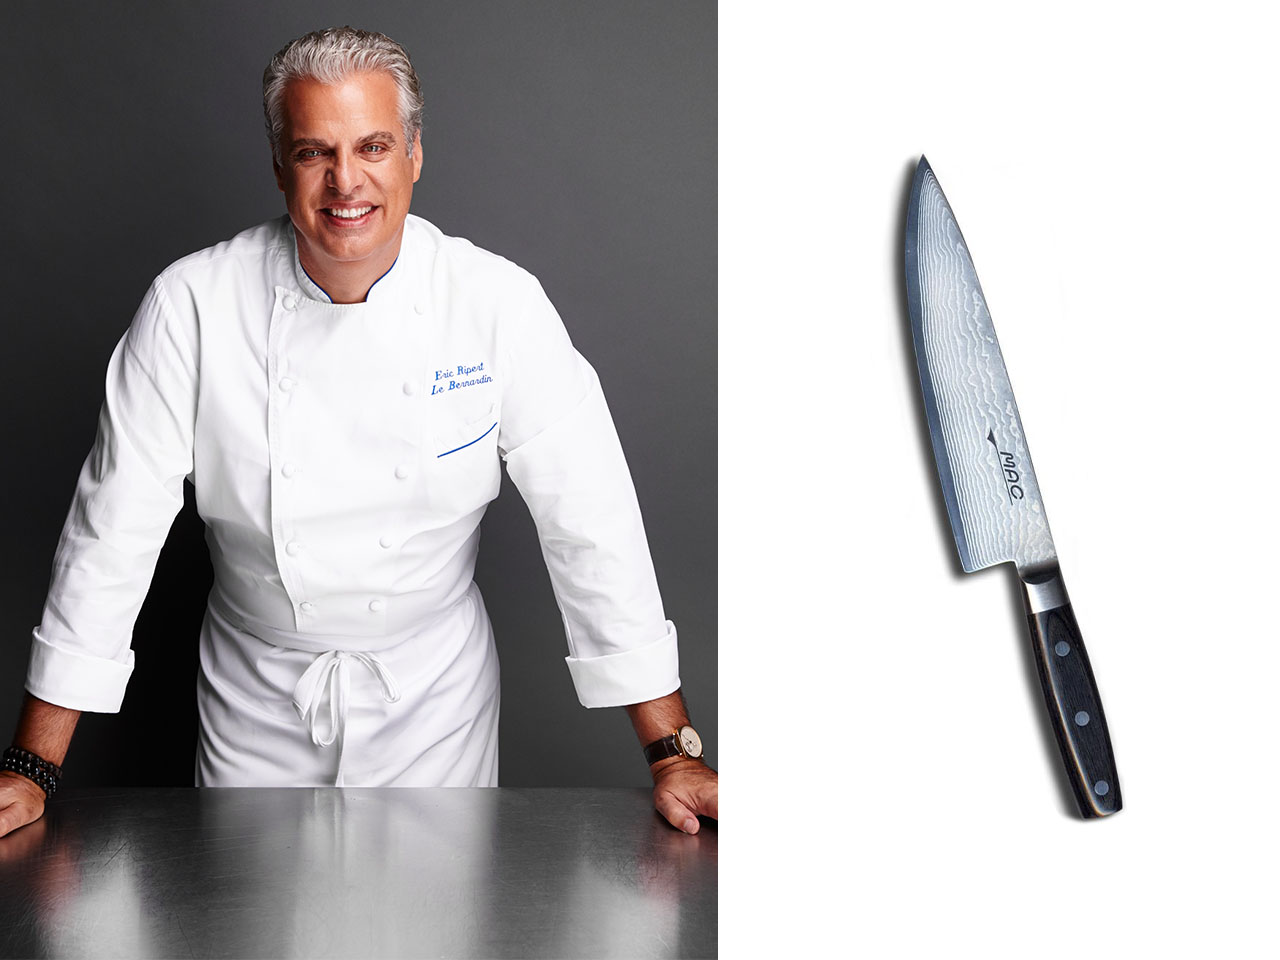 The Best Chef's Knives According to 10 of the Best Chefs in